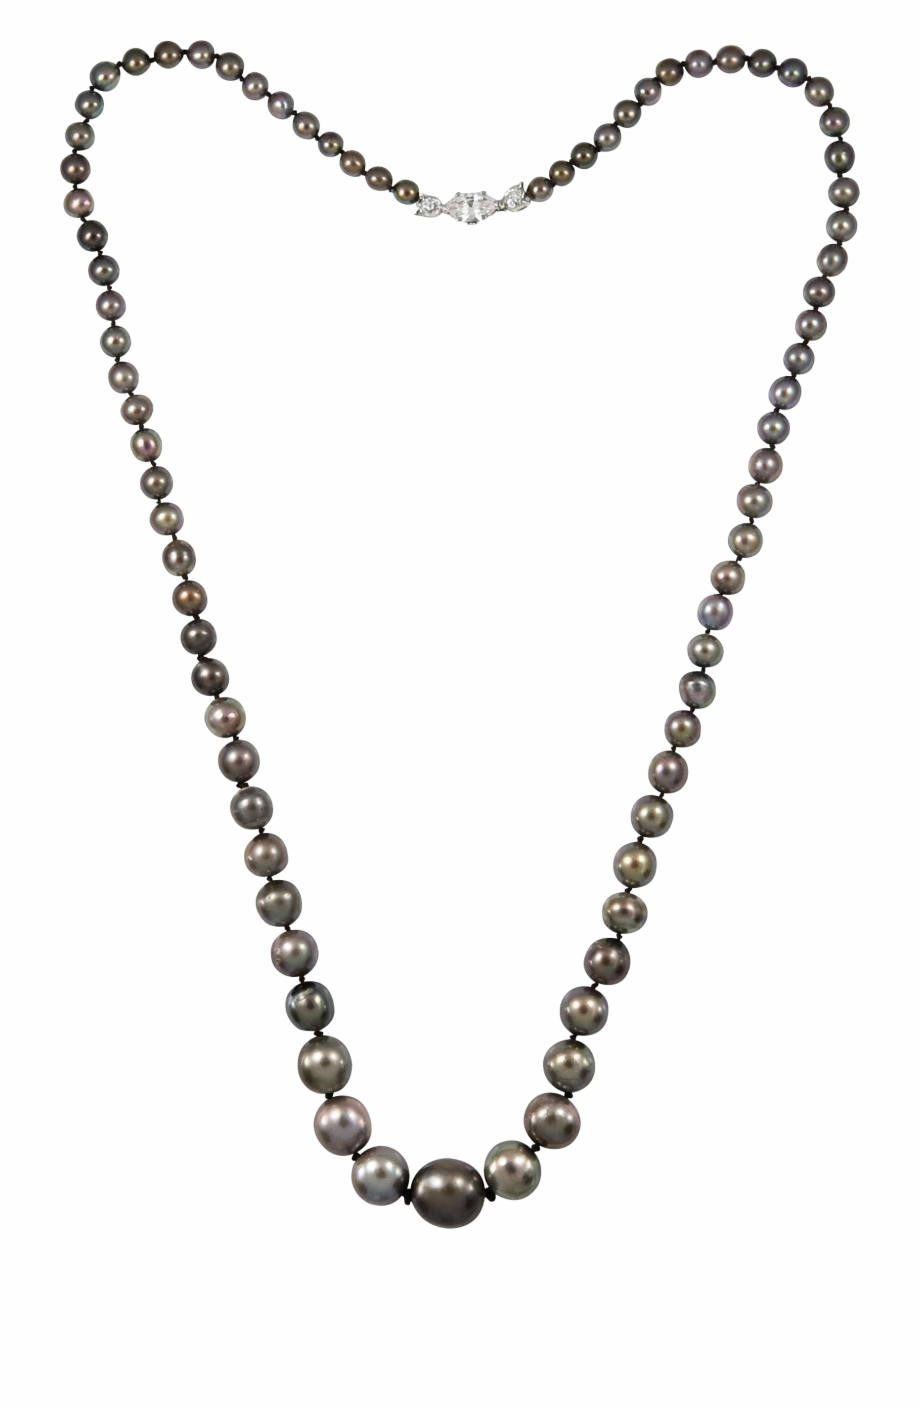 Necklace Png.